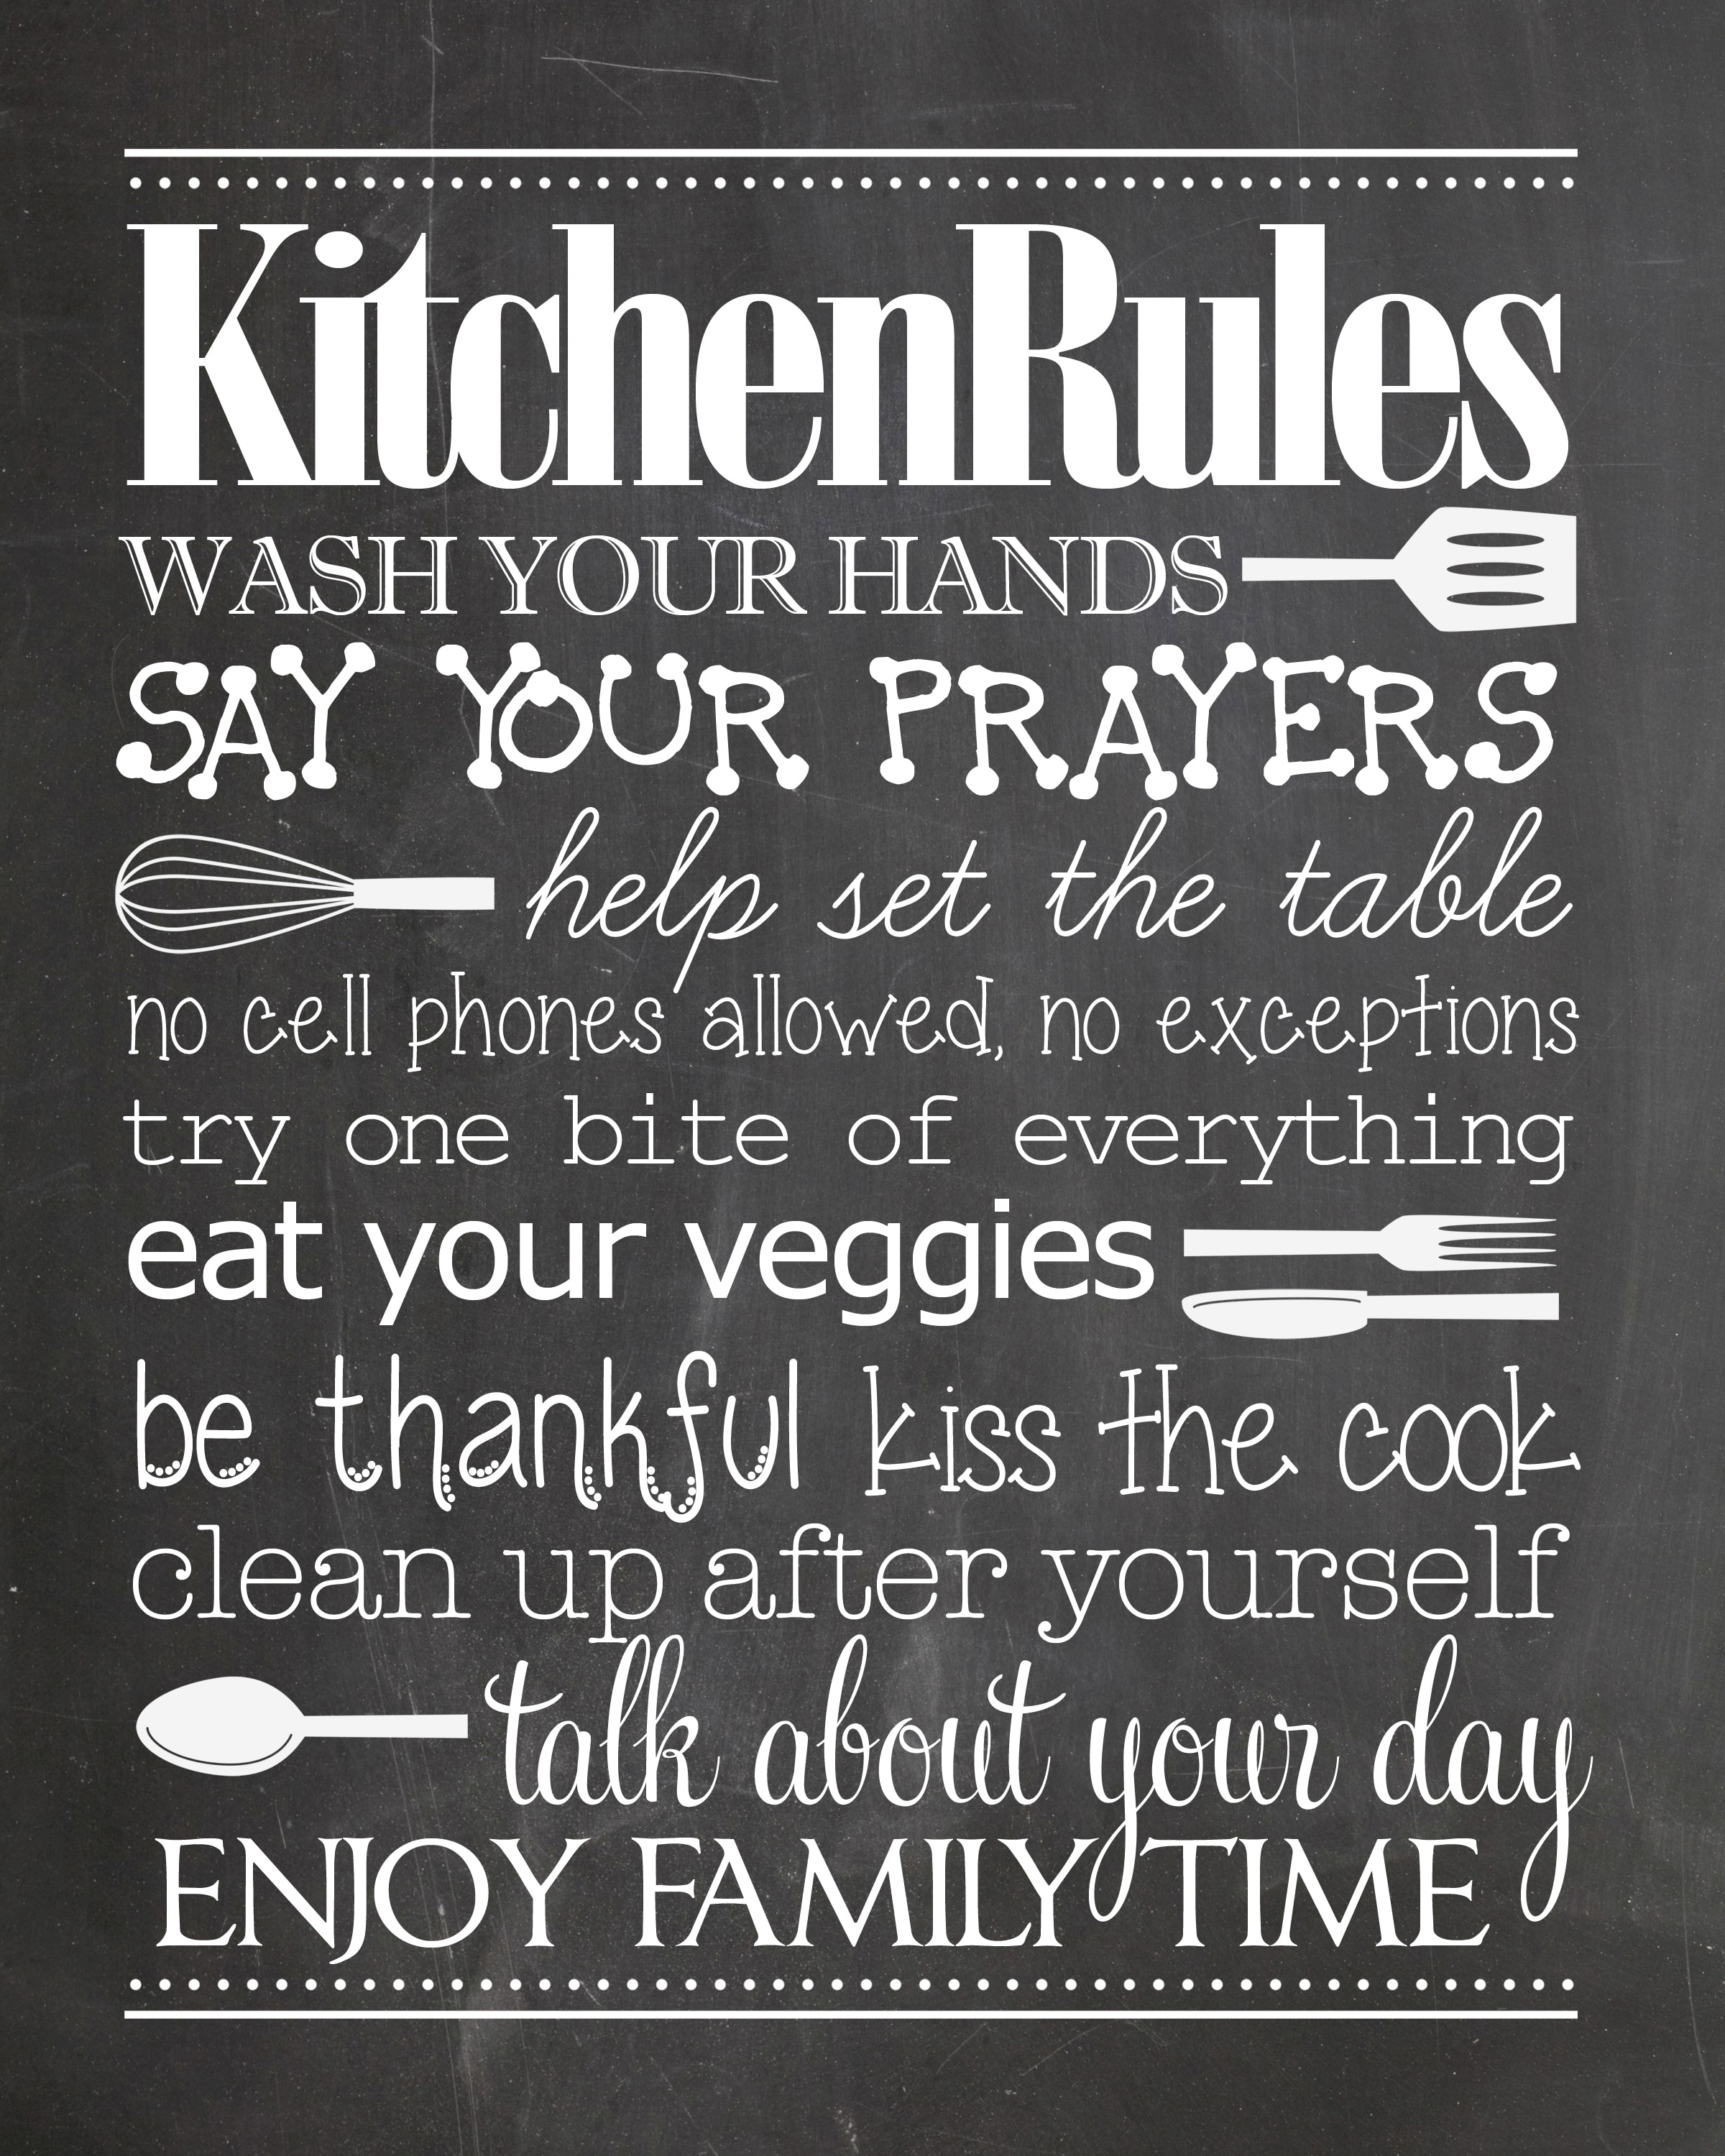 Crush image with regard to kitchen printable